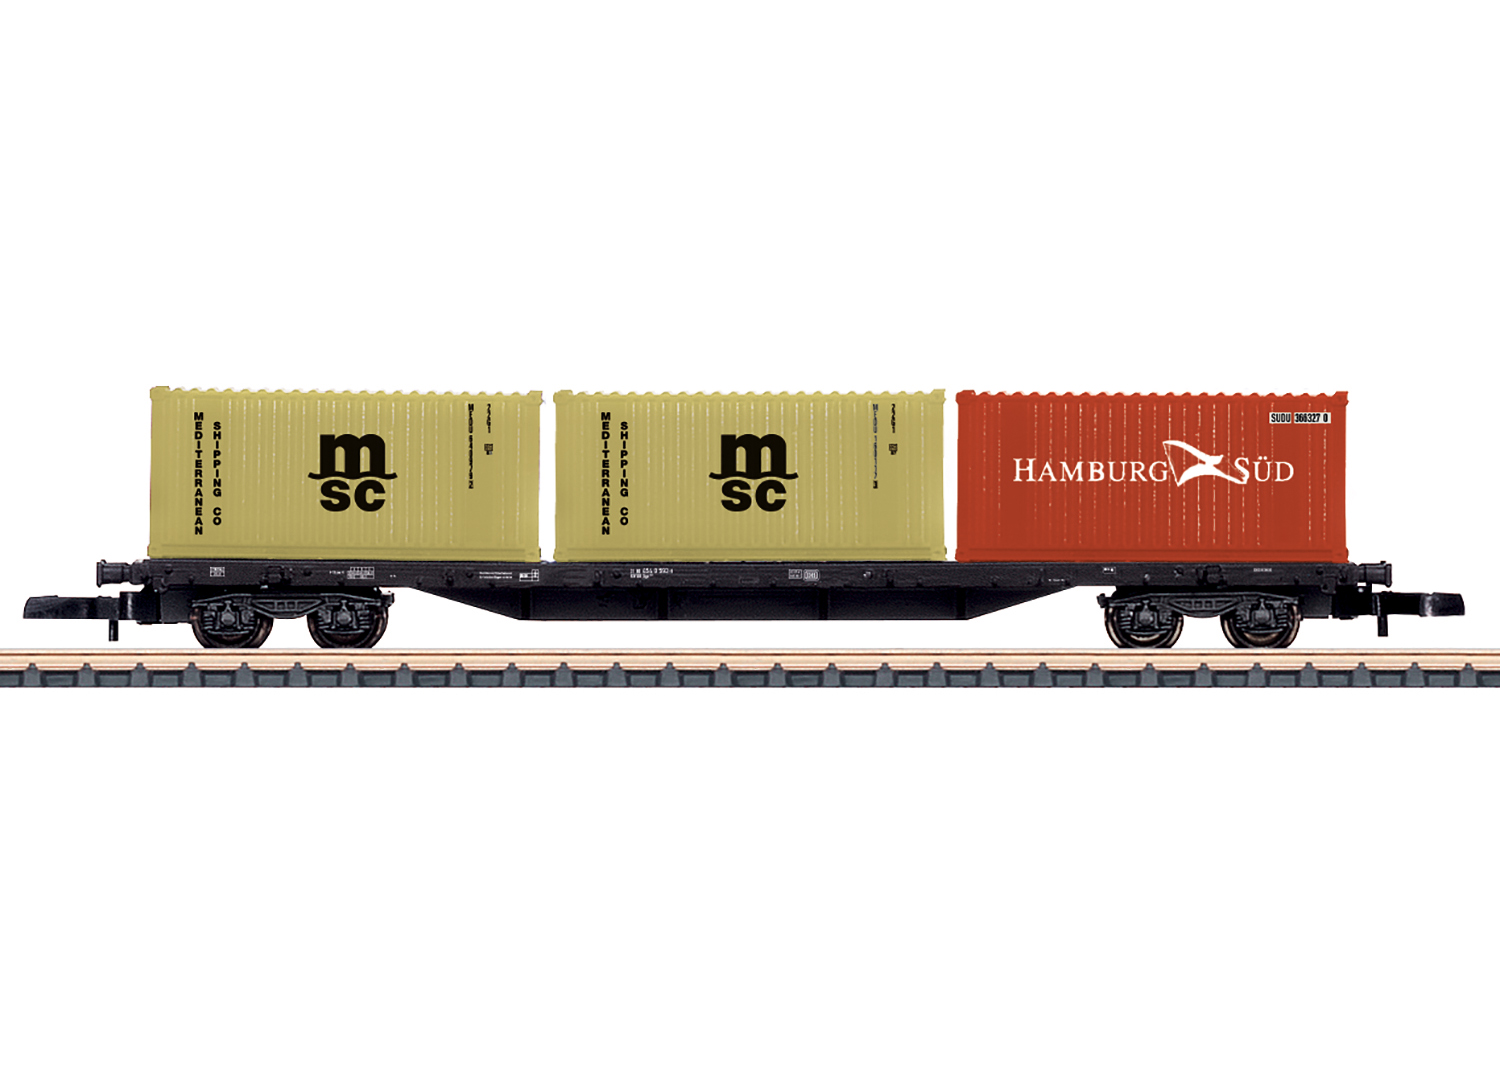 Type Sgs 693 Four-Axle Container Transport Car